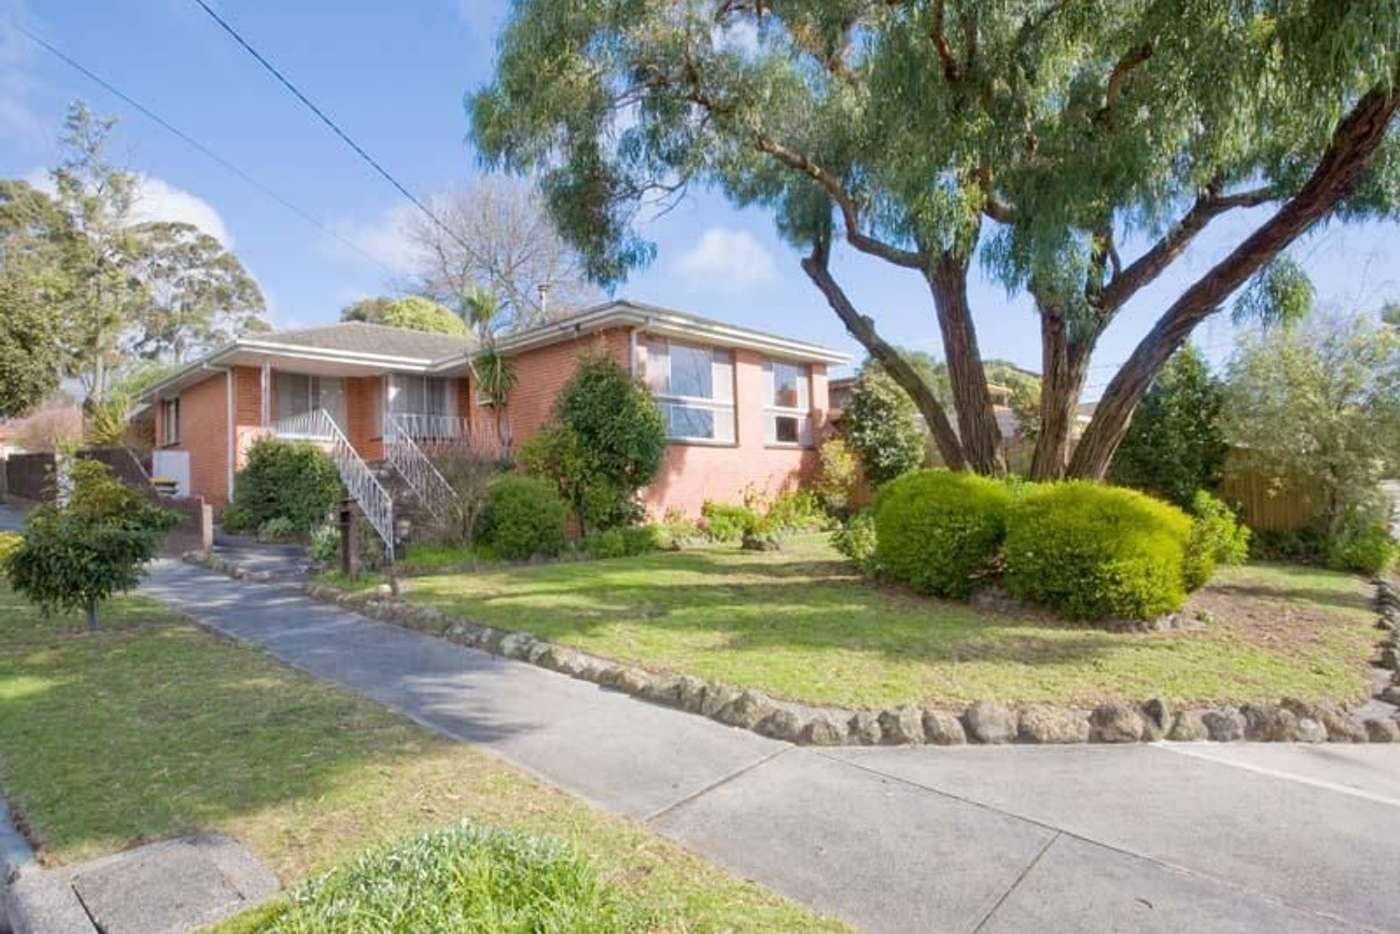 Main view of Homely house listing, 14 Fenwick Street, Frankston VIC 3199